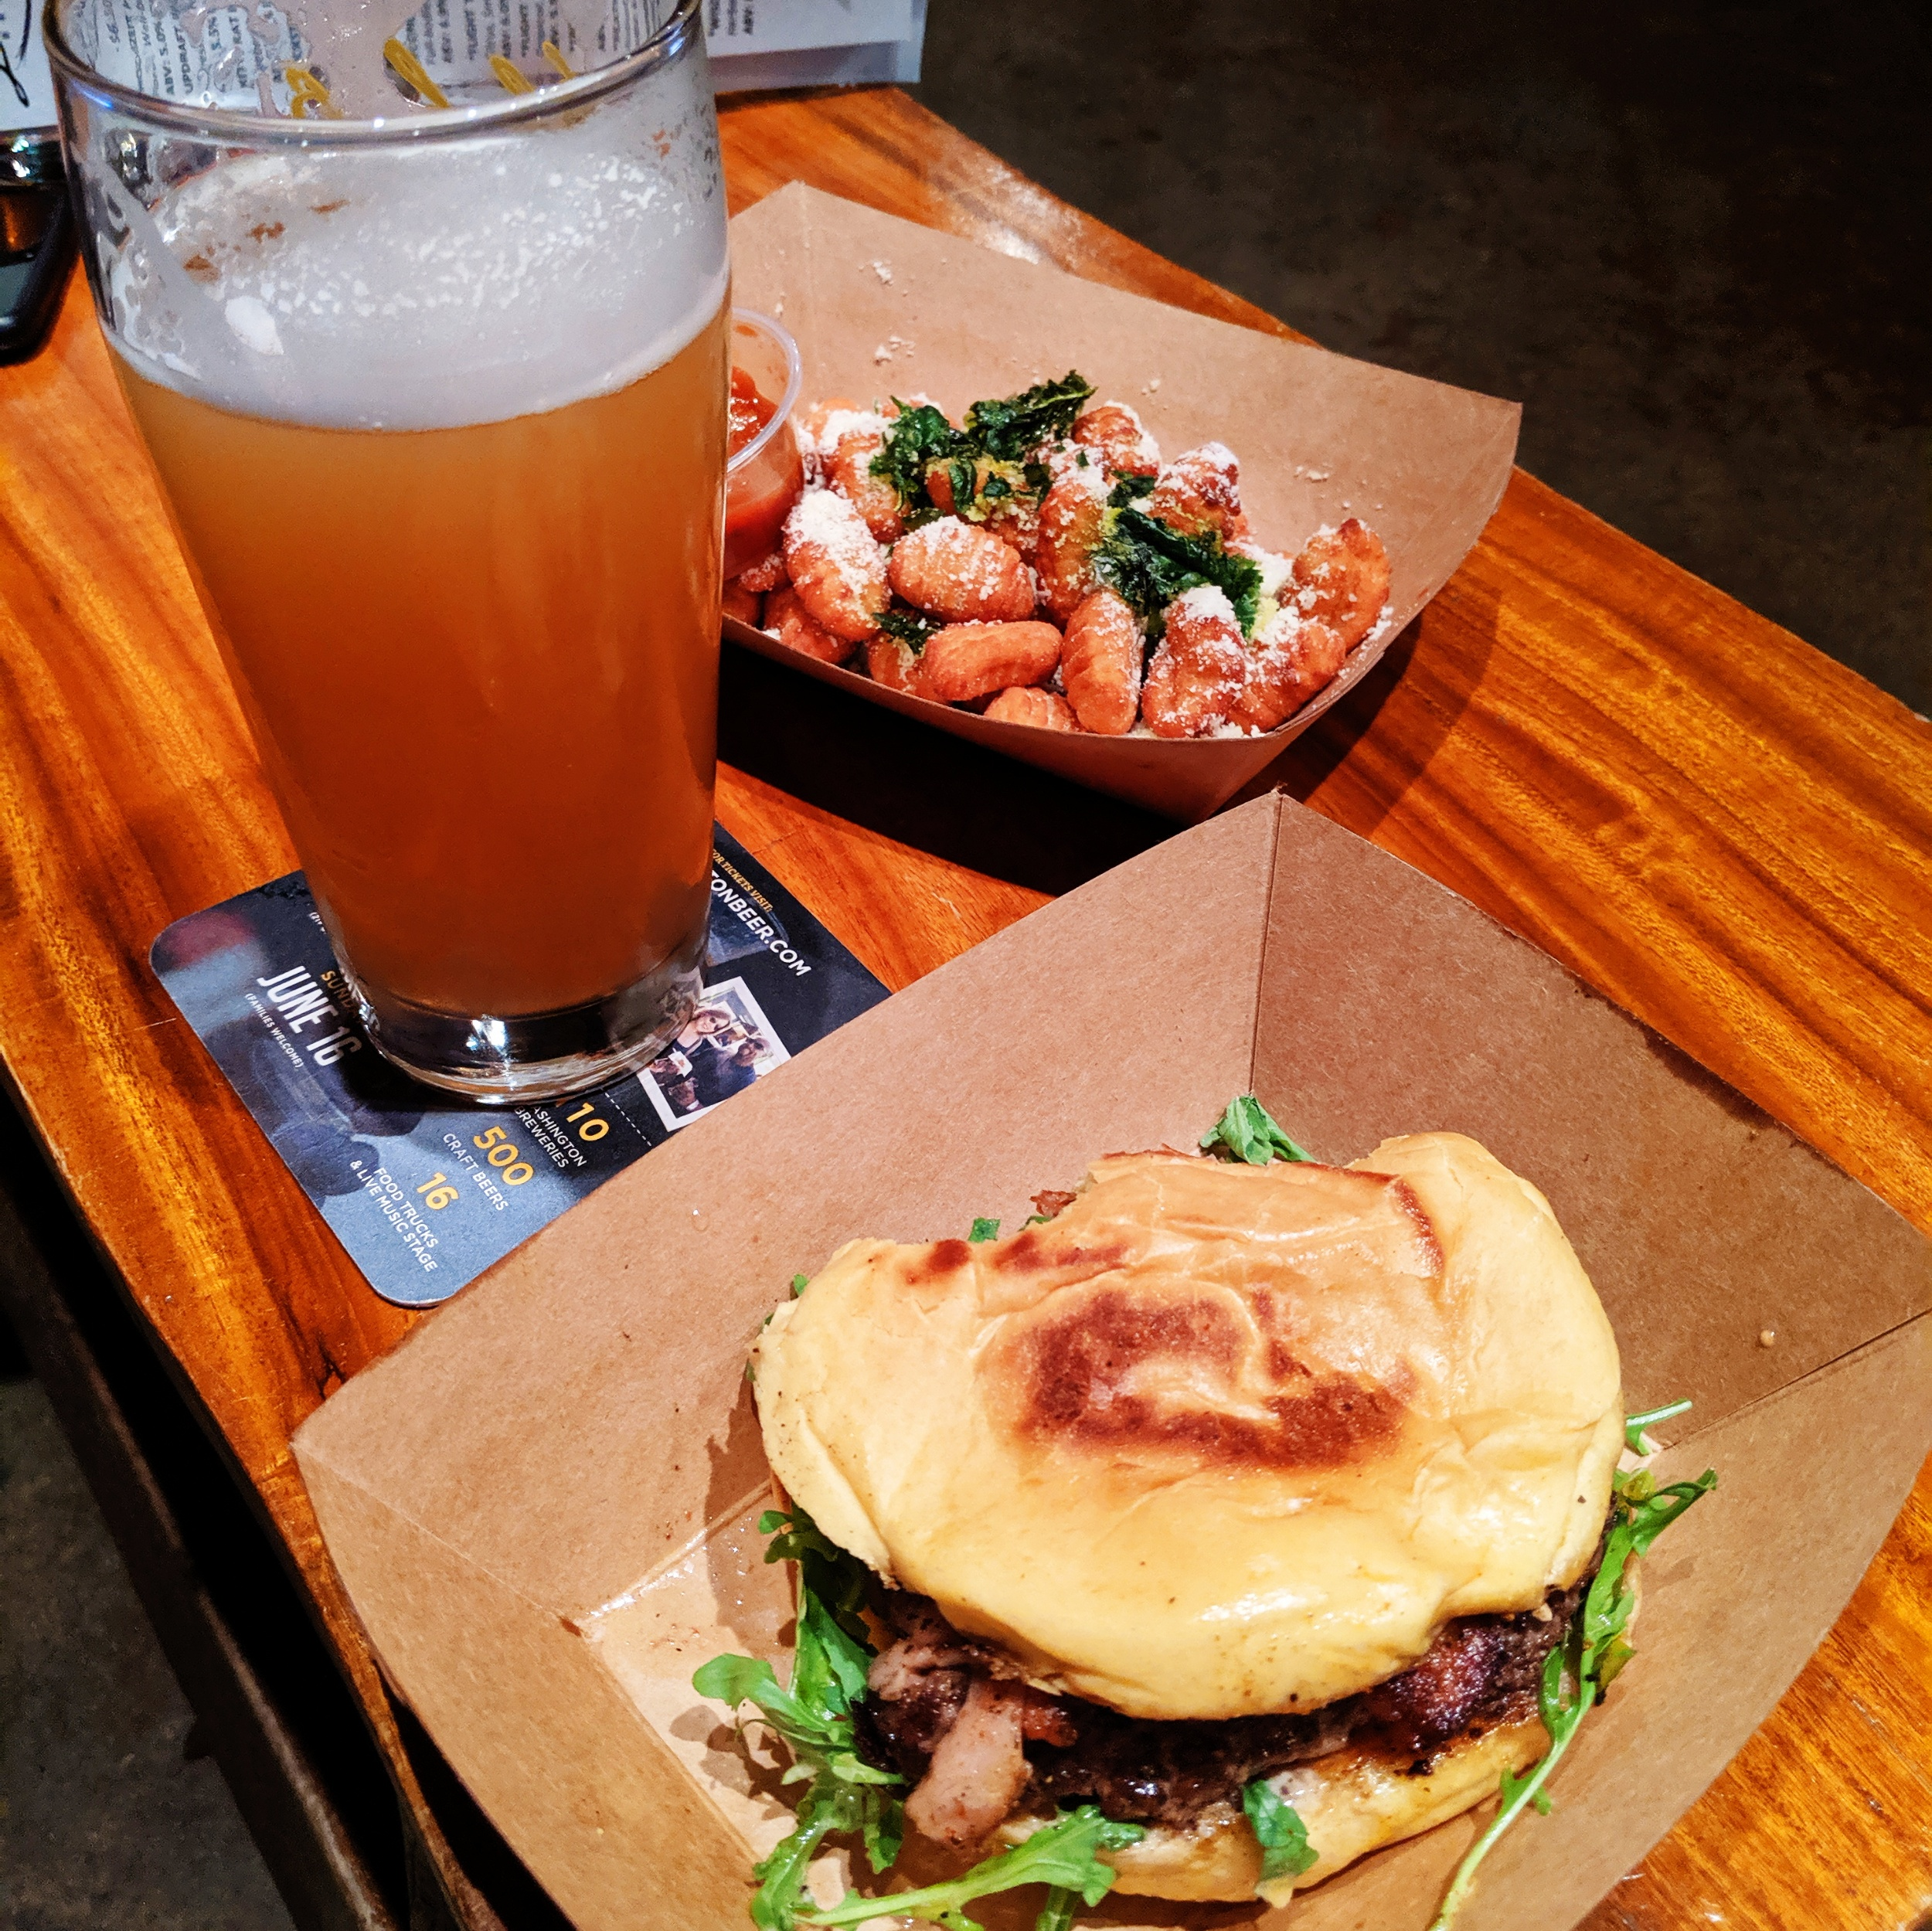 Burgers, beer, and gnocchi tots from a new food truck at an old favorite brewery!